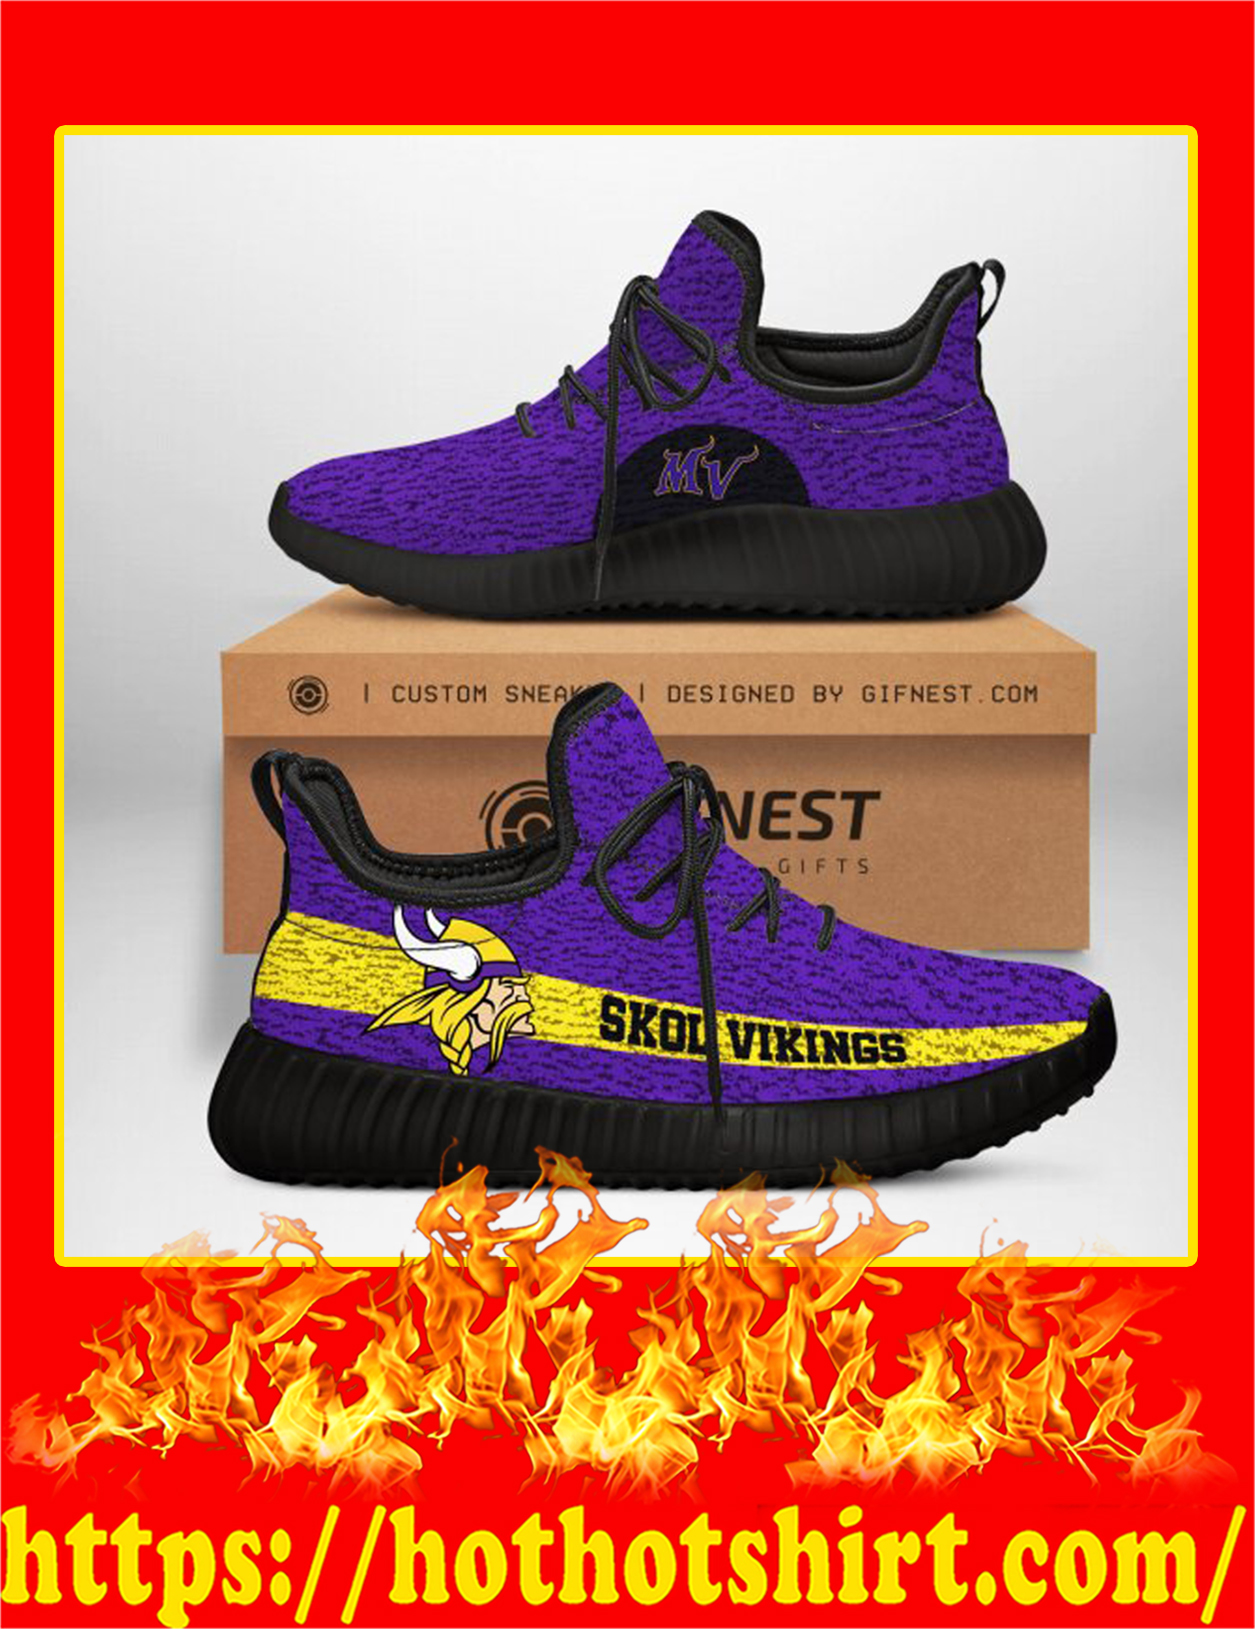 Skol Vikings Minnesota Vikings NFL Yeezy Sneaker - Men